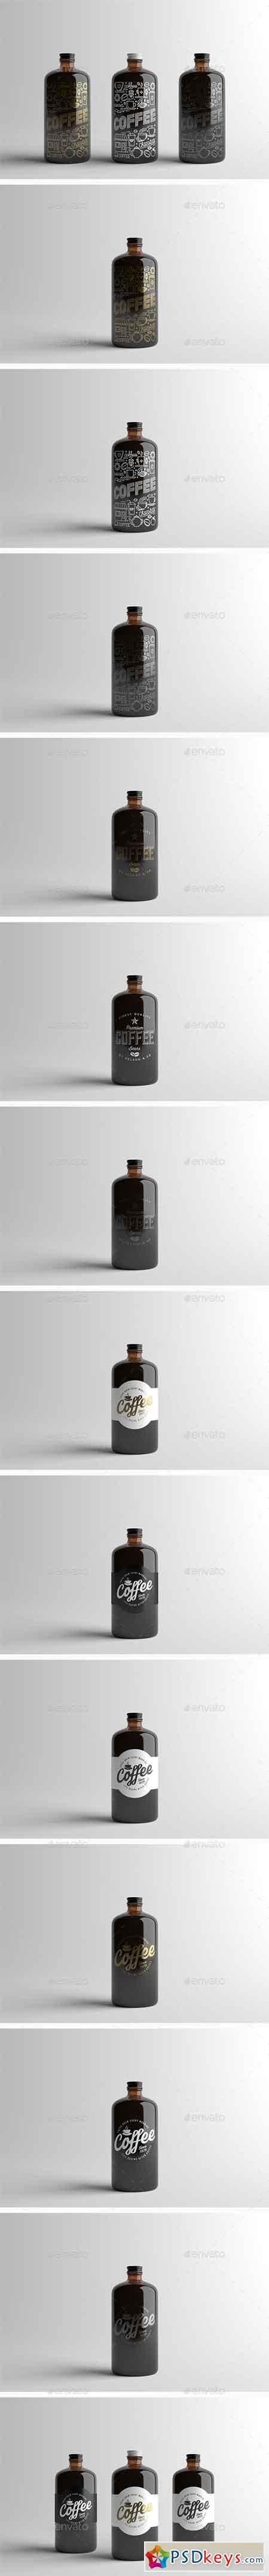 Coffee Bottle Packaging Mock-Up 15512013 | mockup | Bottle